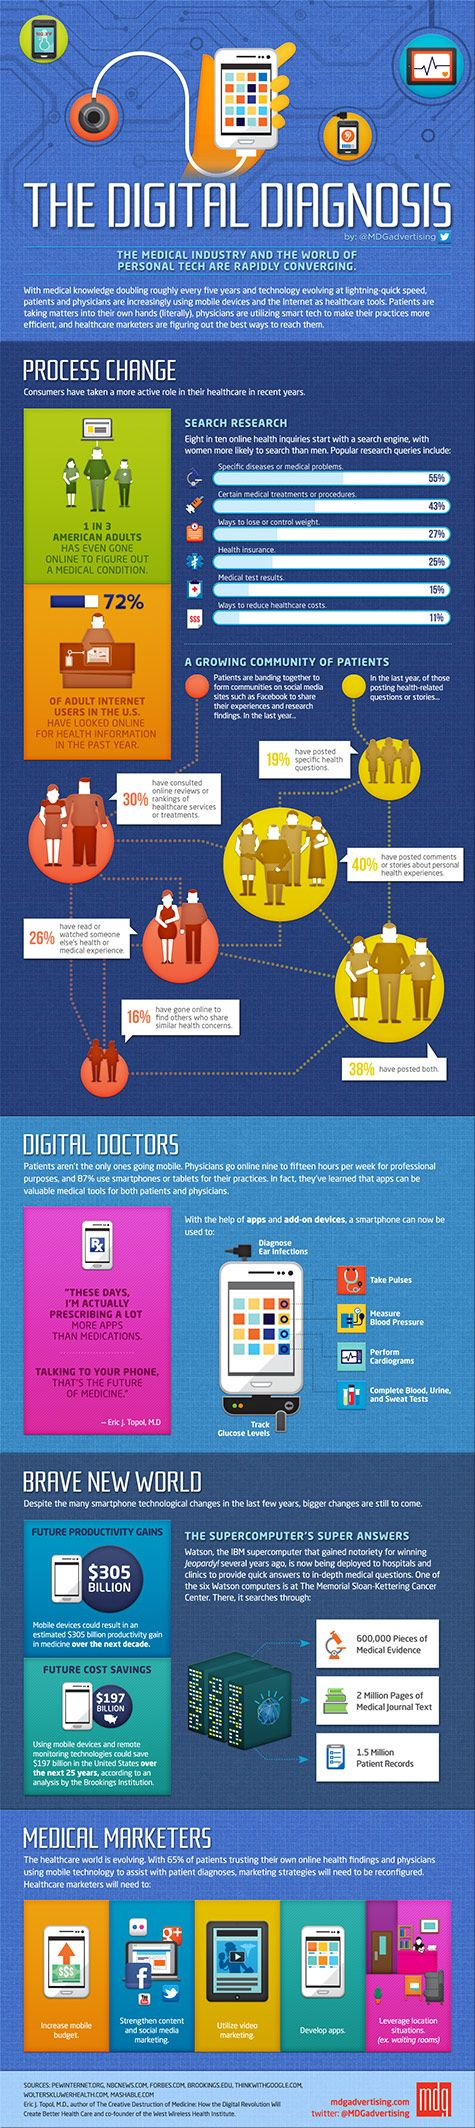 The Digital Diagnosis [Infographic]